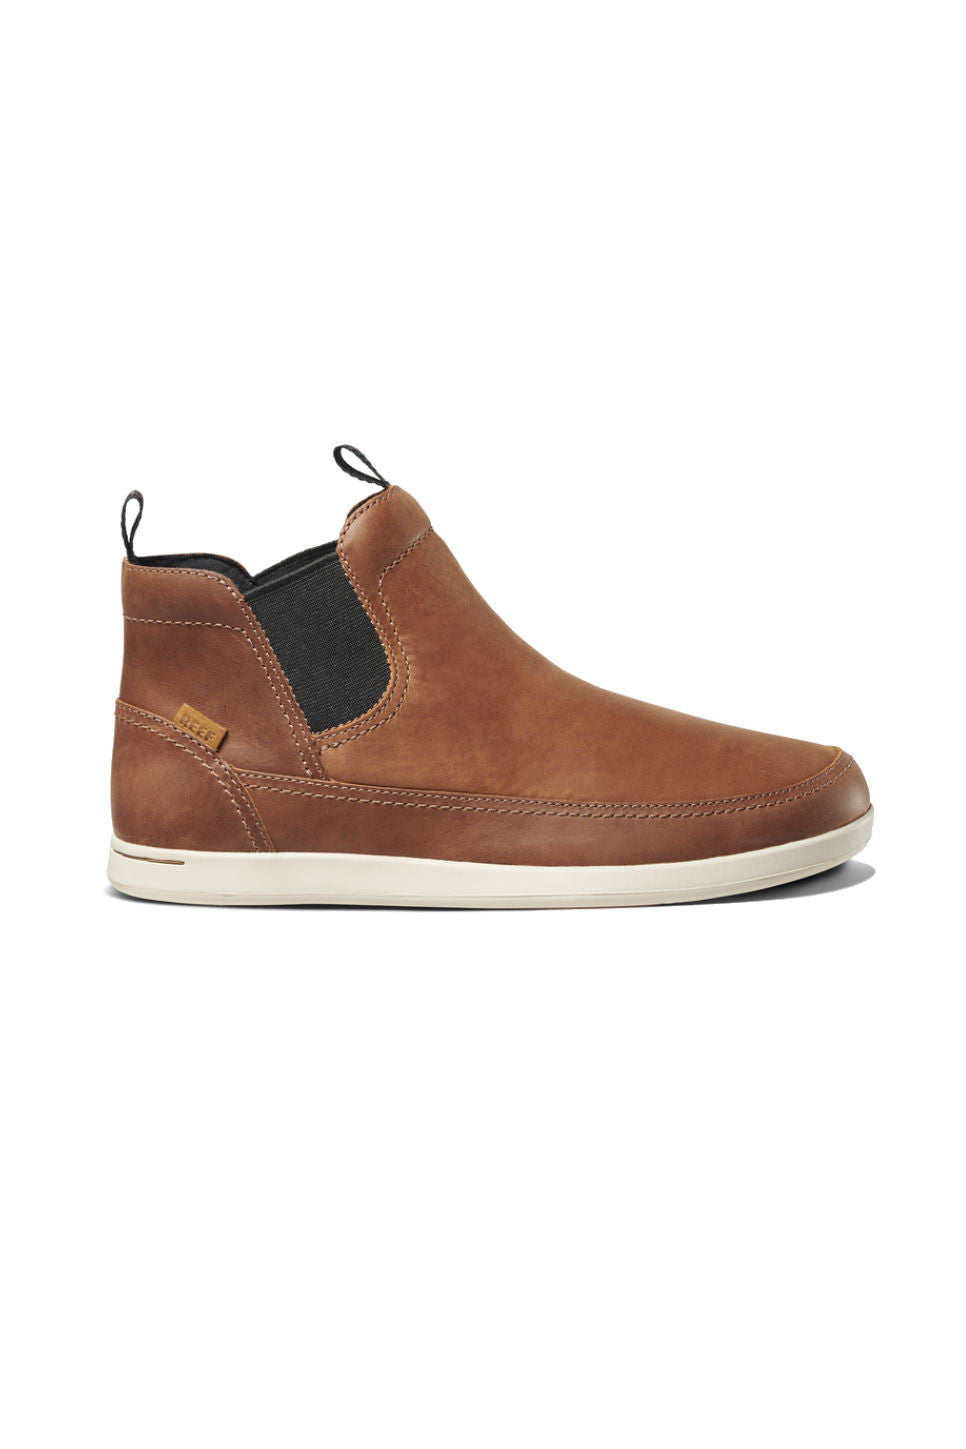 Reef - Cushion Swami Mid LE - Tobacco/Cork - Side